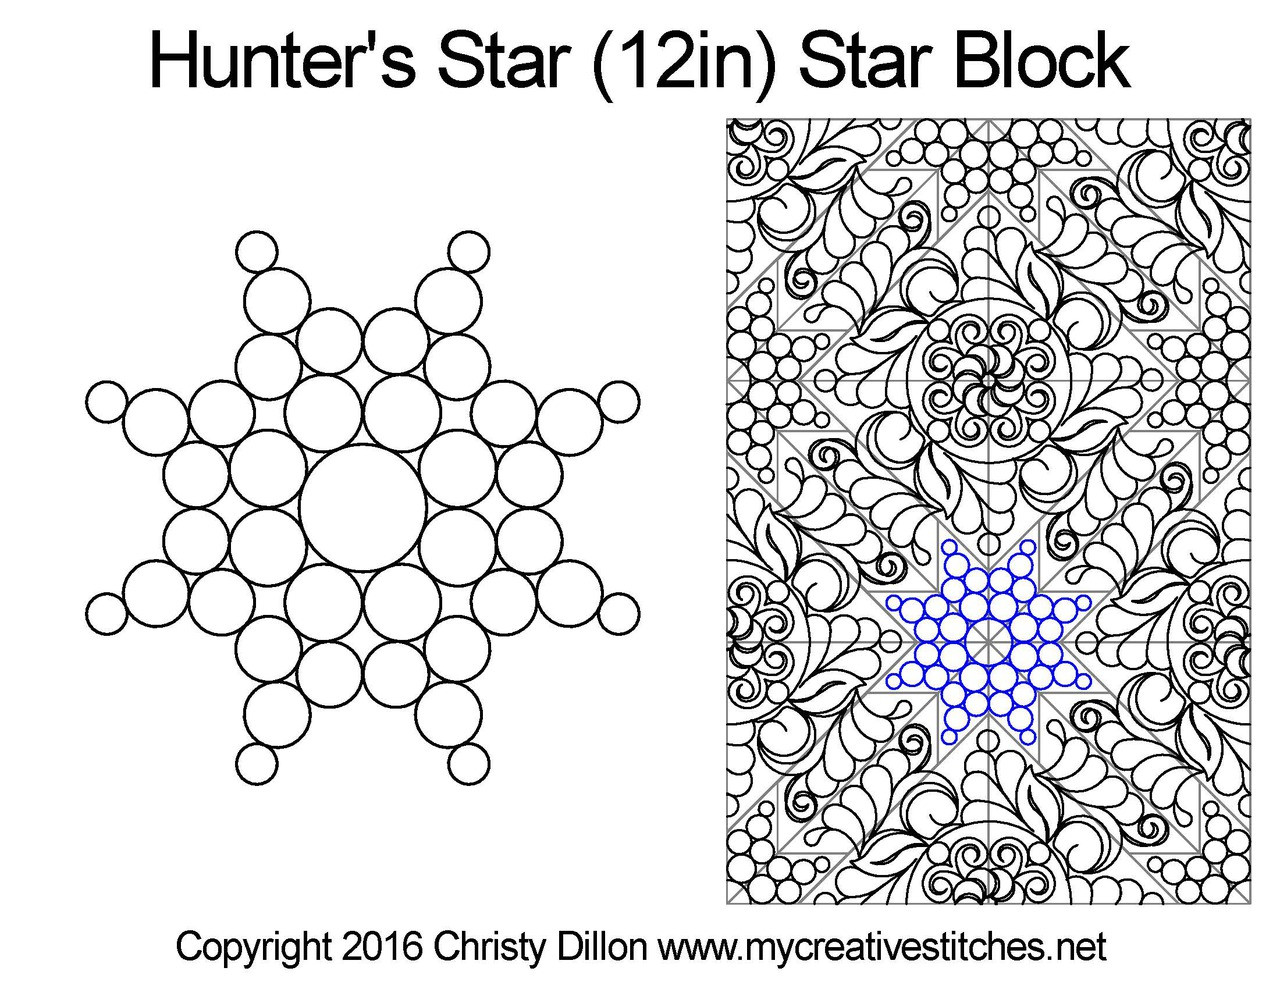 Computerized Quilting Pattern Hunter's Star